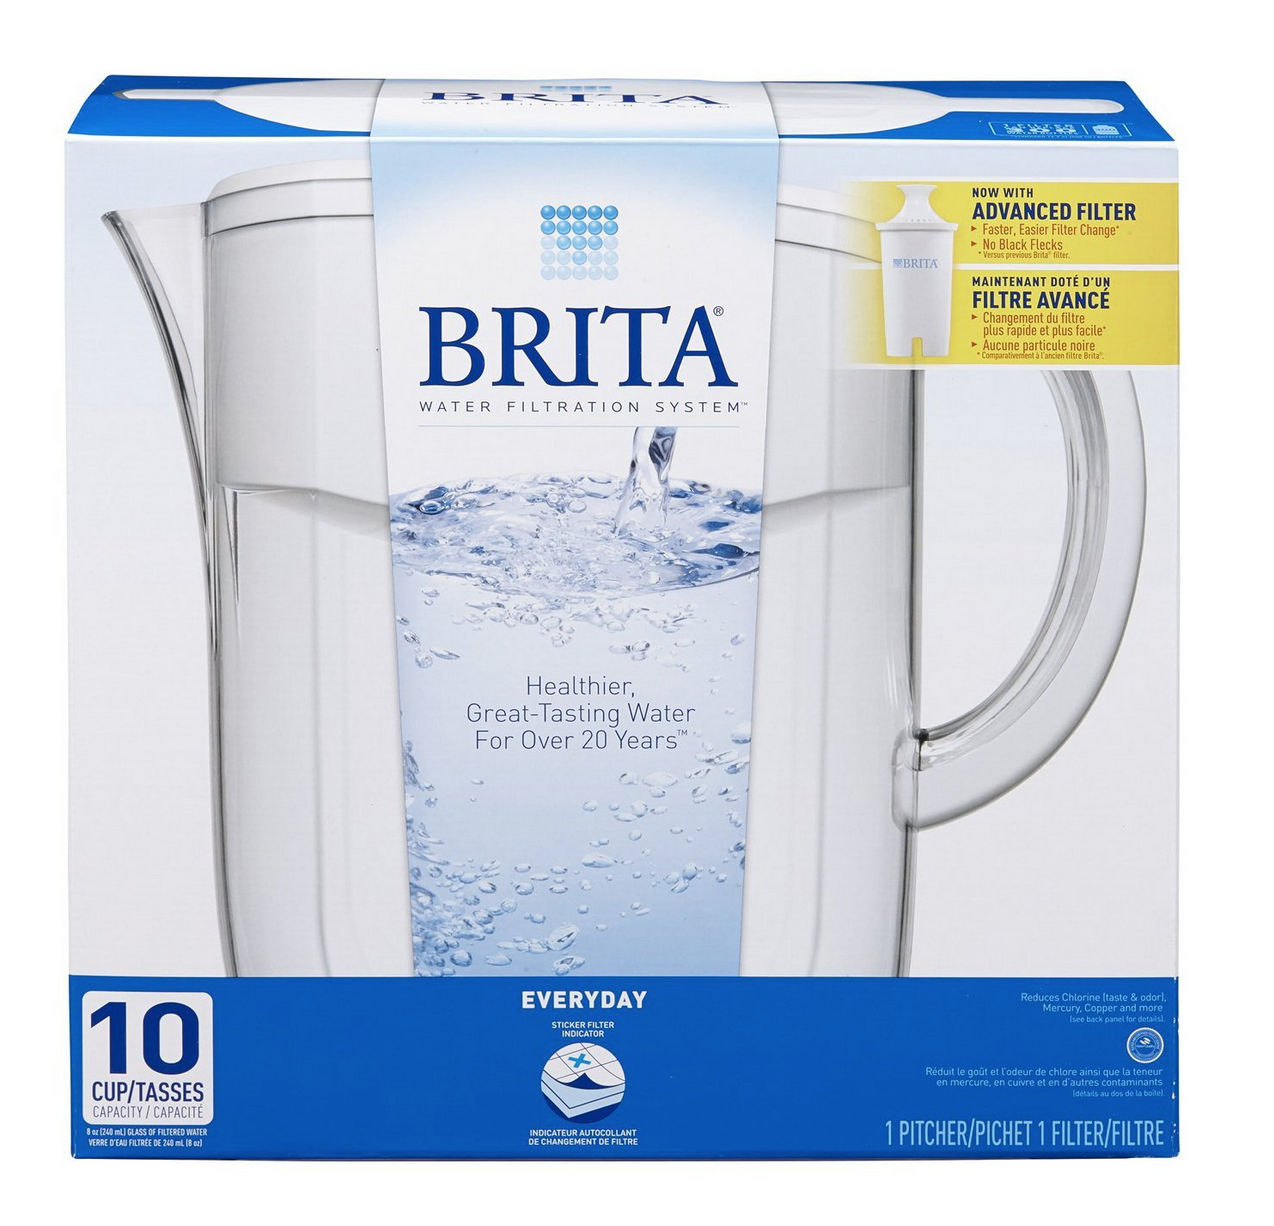 Brita 10-Cup Everyday Water Filter Pitcher Only $22.99 (Reg. $41.39!)